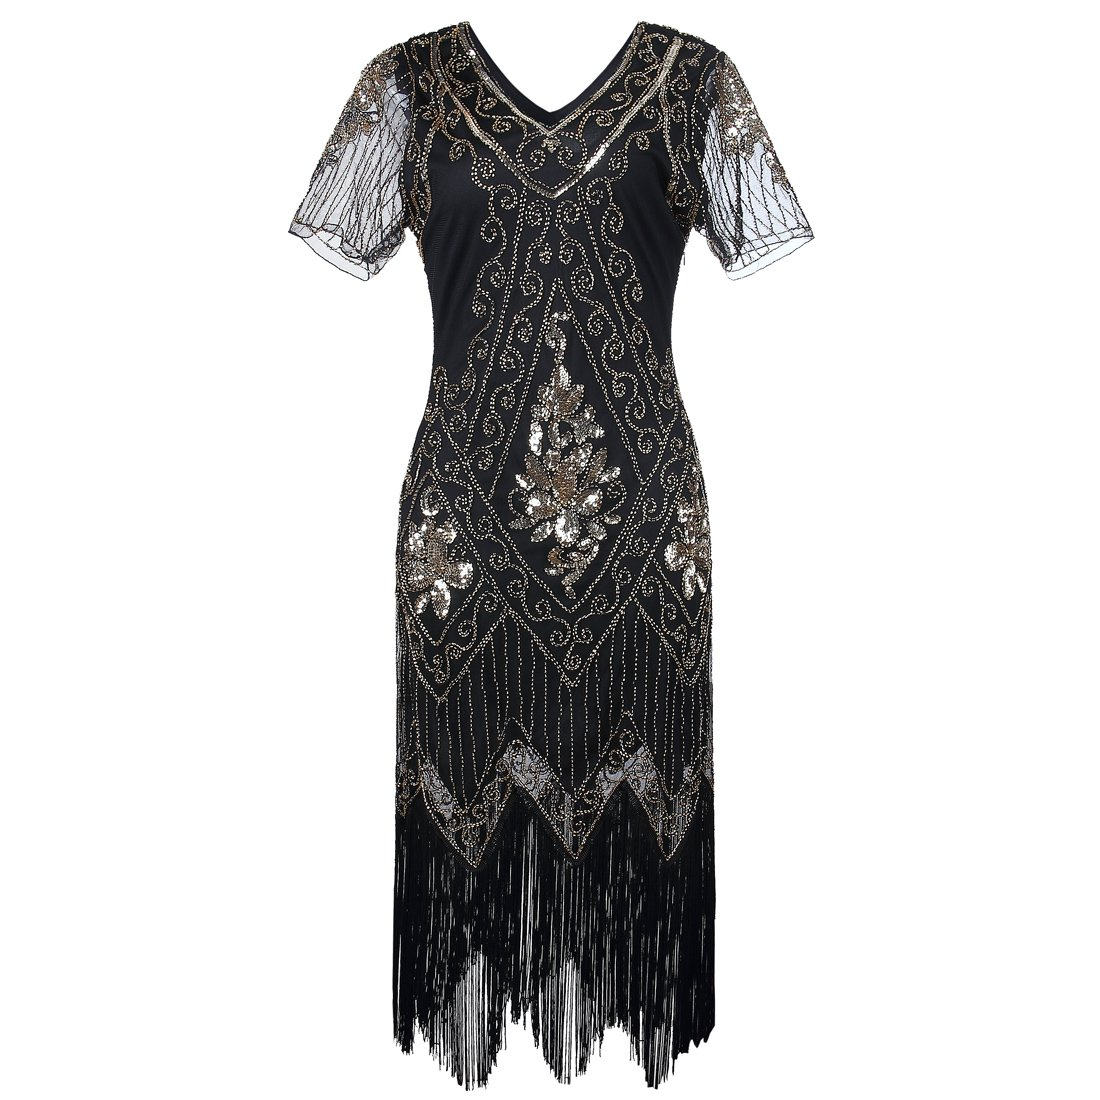 1513f3027 Gatsby 1920s Flapper Dress Women Vintage Sequin Fringe Beaded Art Deco  Fancy Dress with Sleeve for Party Prom